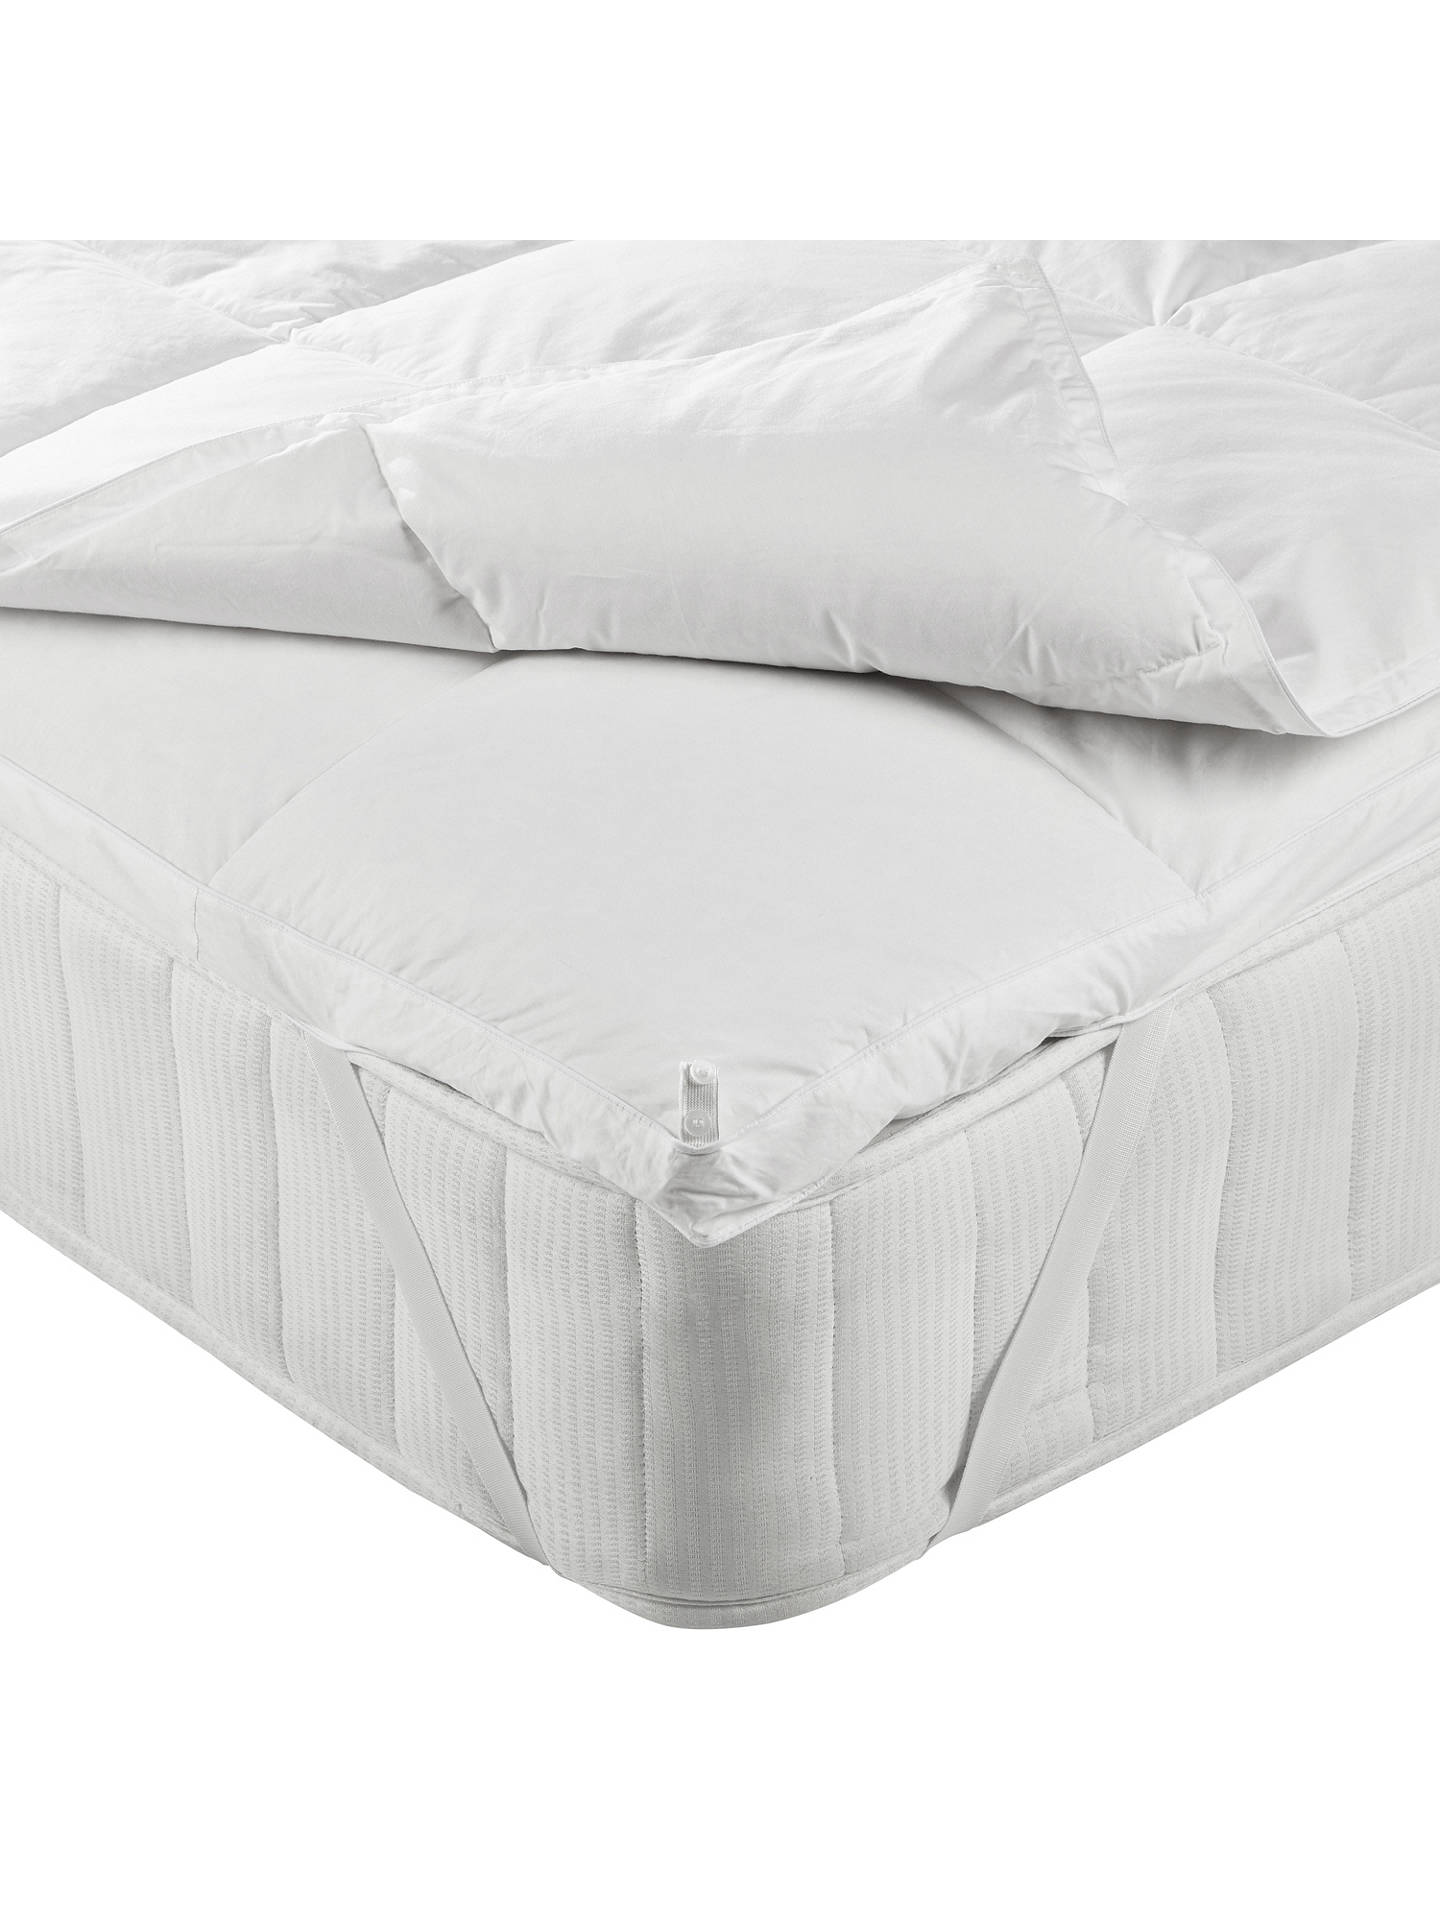 Buy John Lewis & Partners Natural Goose Down 5cm Deep Mattress Topper, Single Online at johnlewis.com